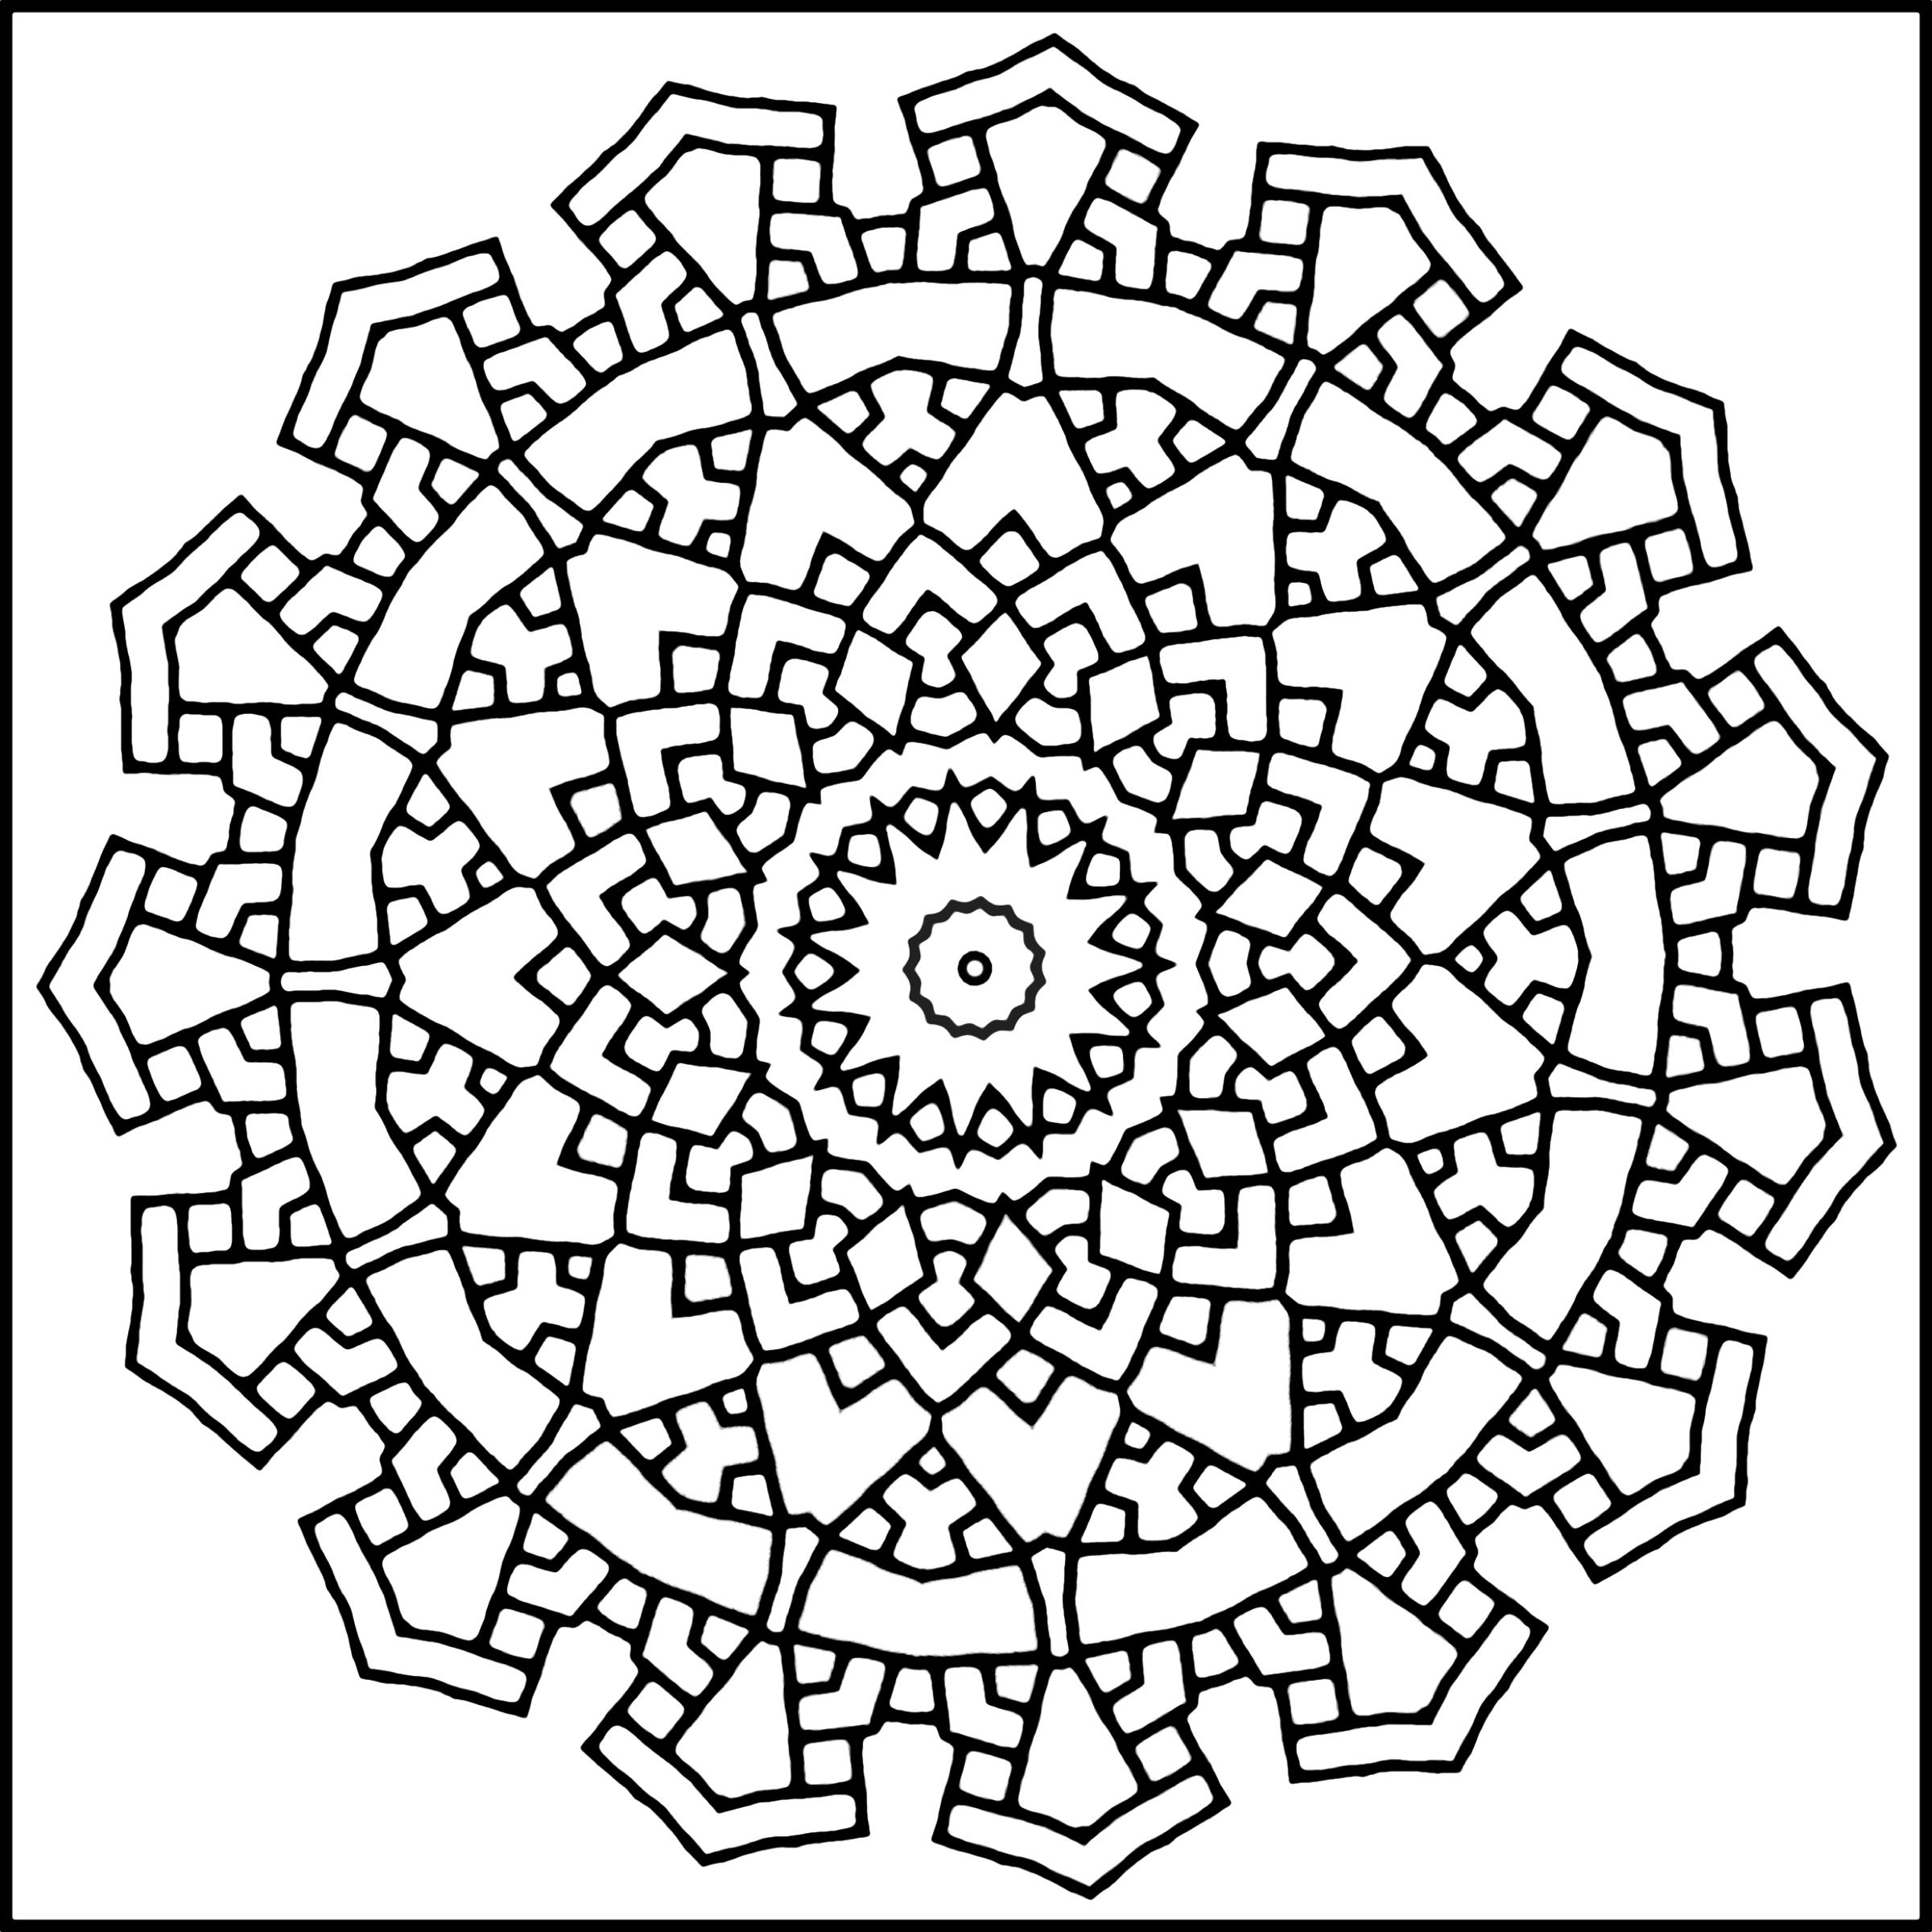 A Coloring Book That Can Be Downloaded And Colored You Print Out As Many Want This Has 20 Pages With 5